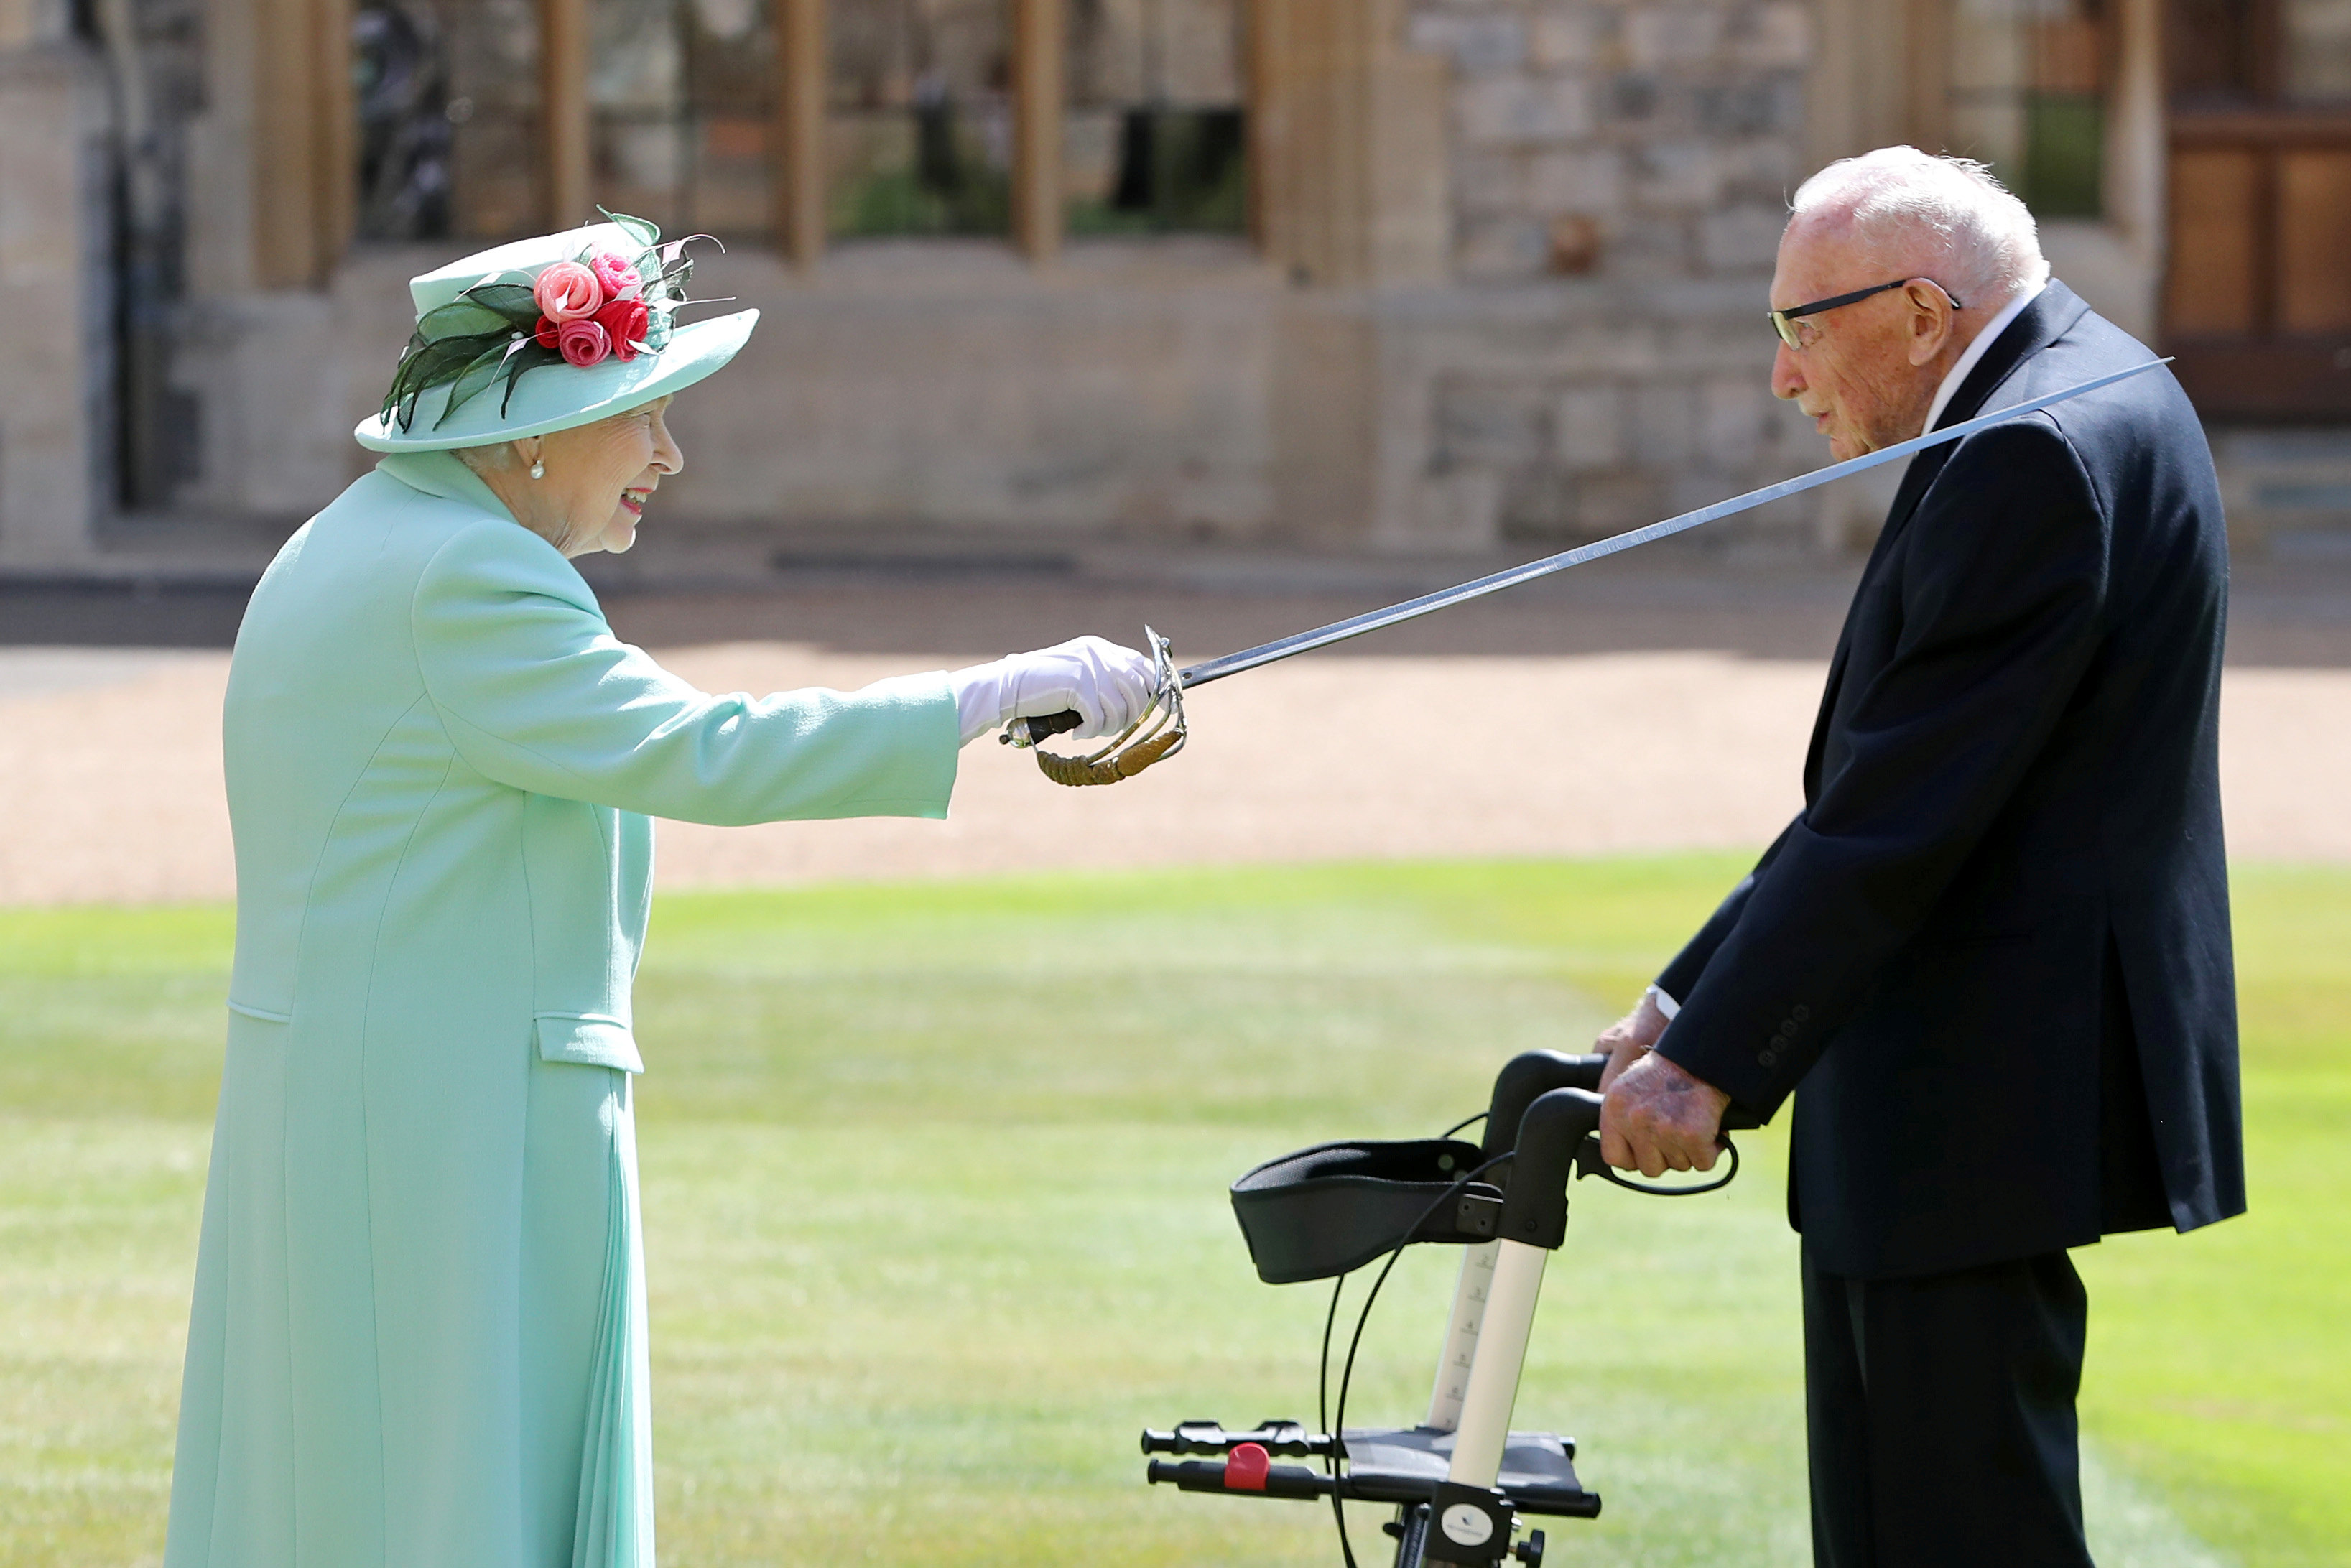 Britain's Queen Elizabeth awards Captain Tom Moore with the insignia of Knight Bachelor at Windsor Castle, in Windsor, Britain July 17, 2020